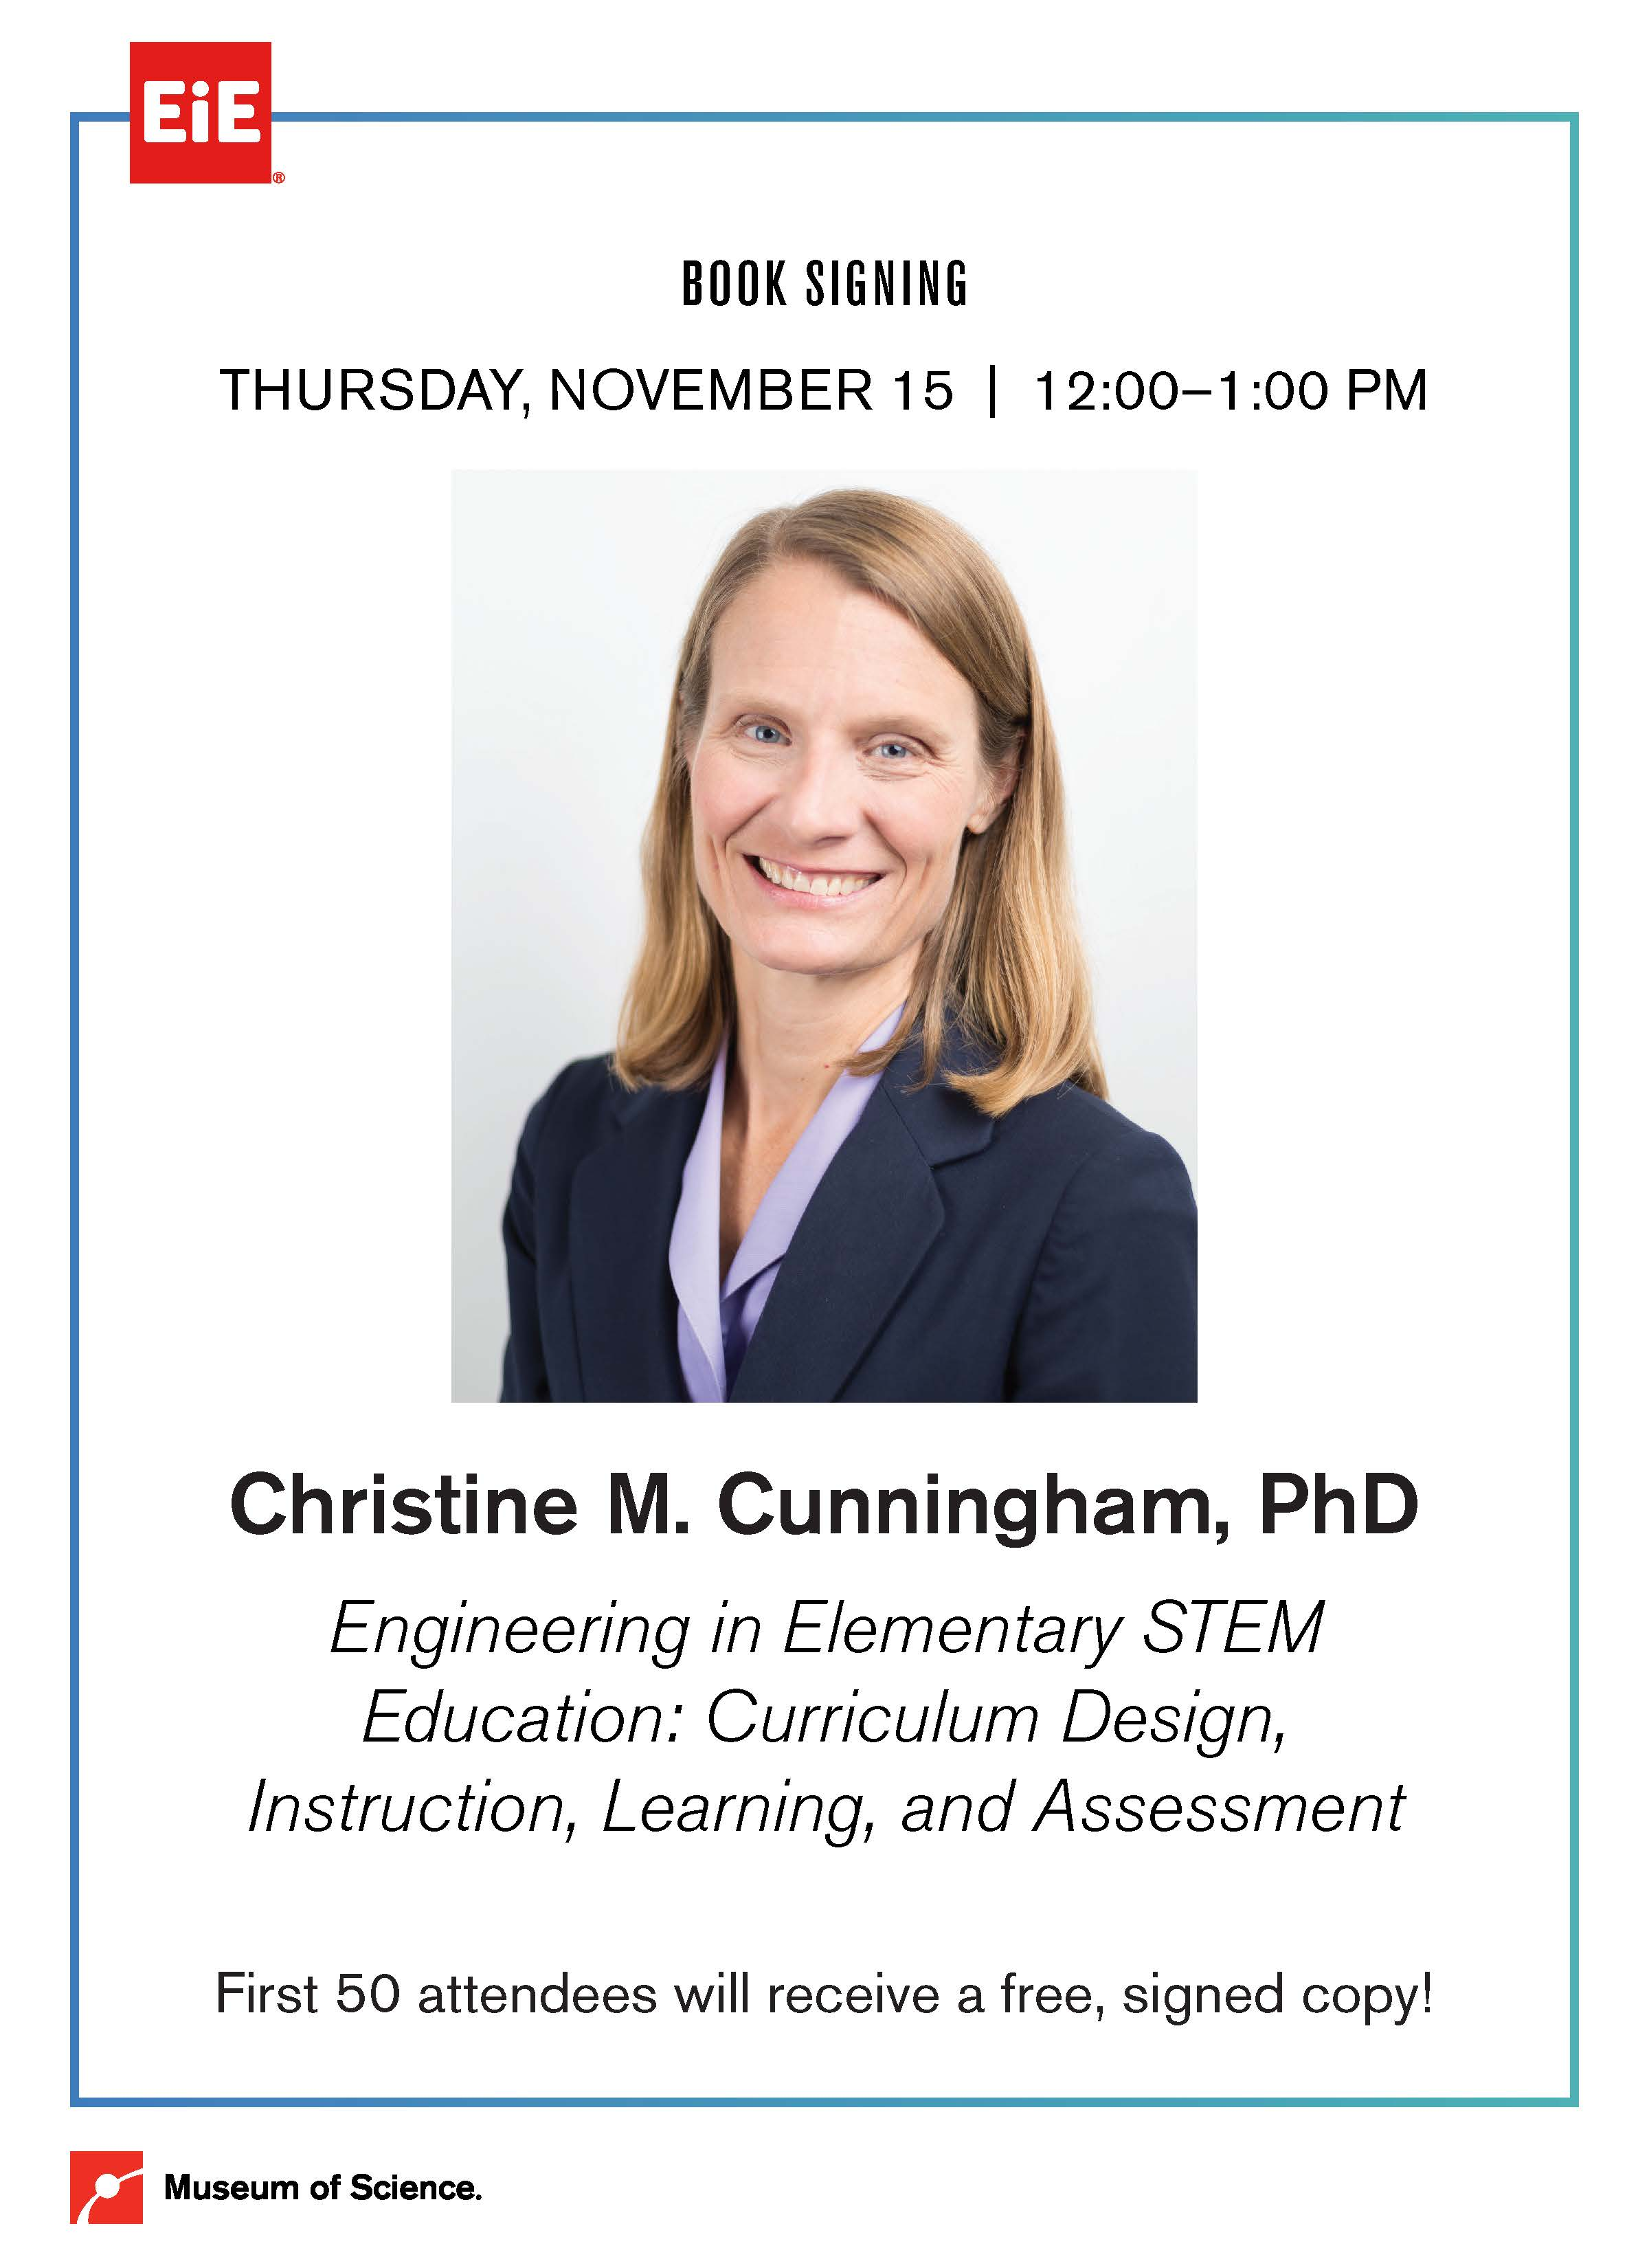 Christine Cunningham Engineering in Elementary STEM Education: Curriculum Design, Instruction, Learning and Assessment